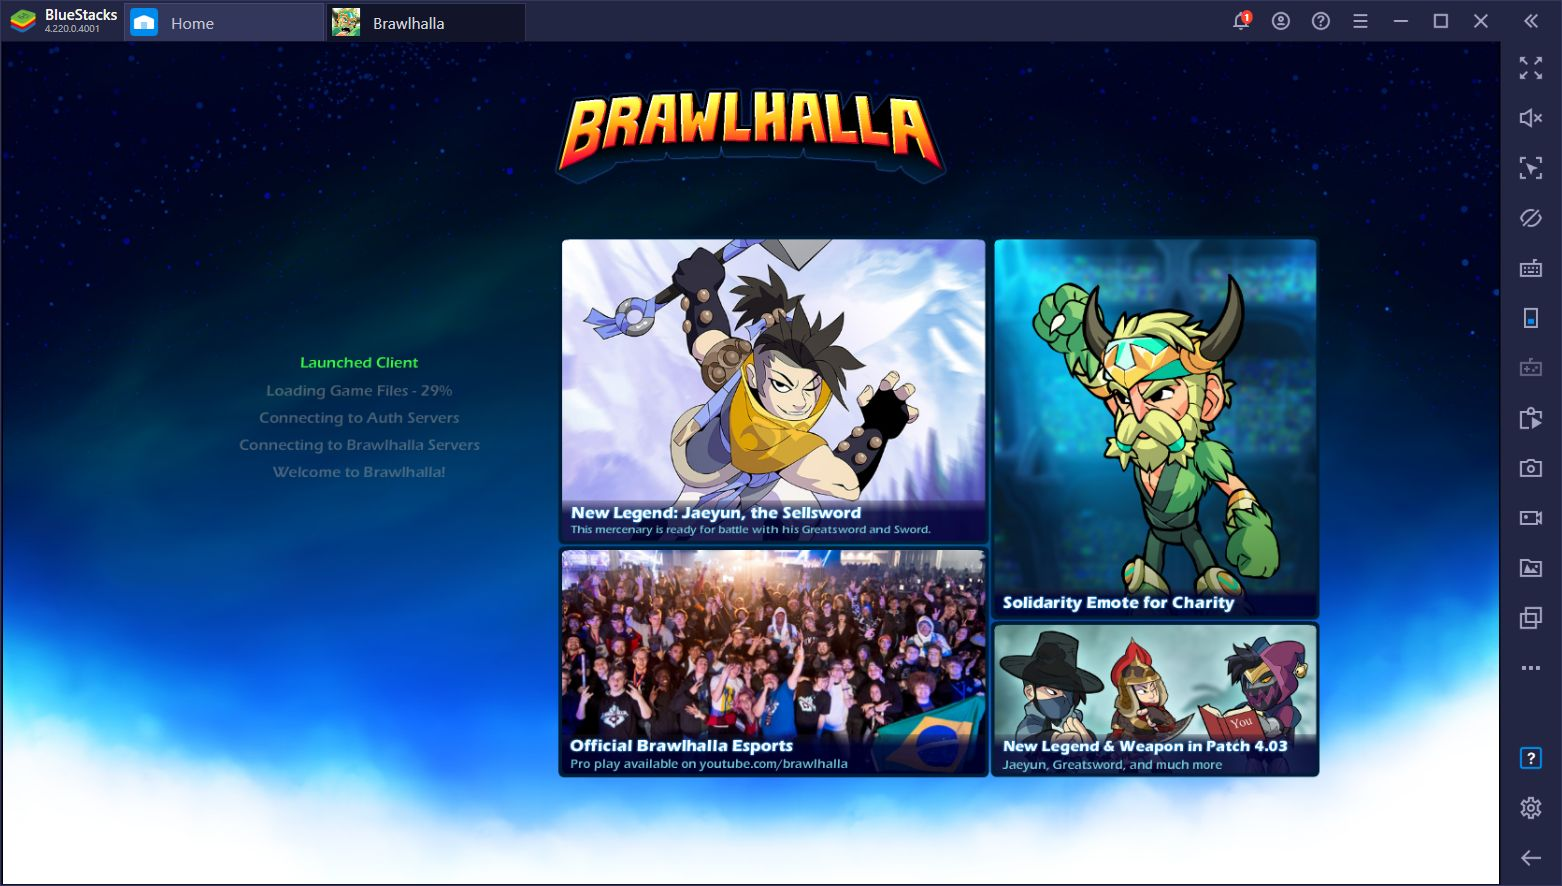 Brawlhalla on BlueStacks – Our First Impressions of the New Mobile Version